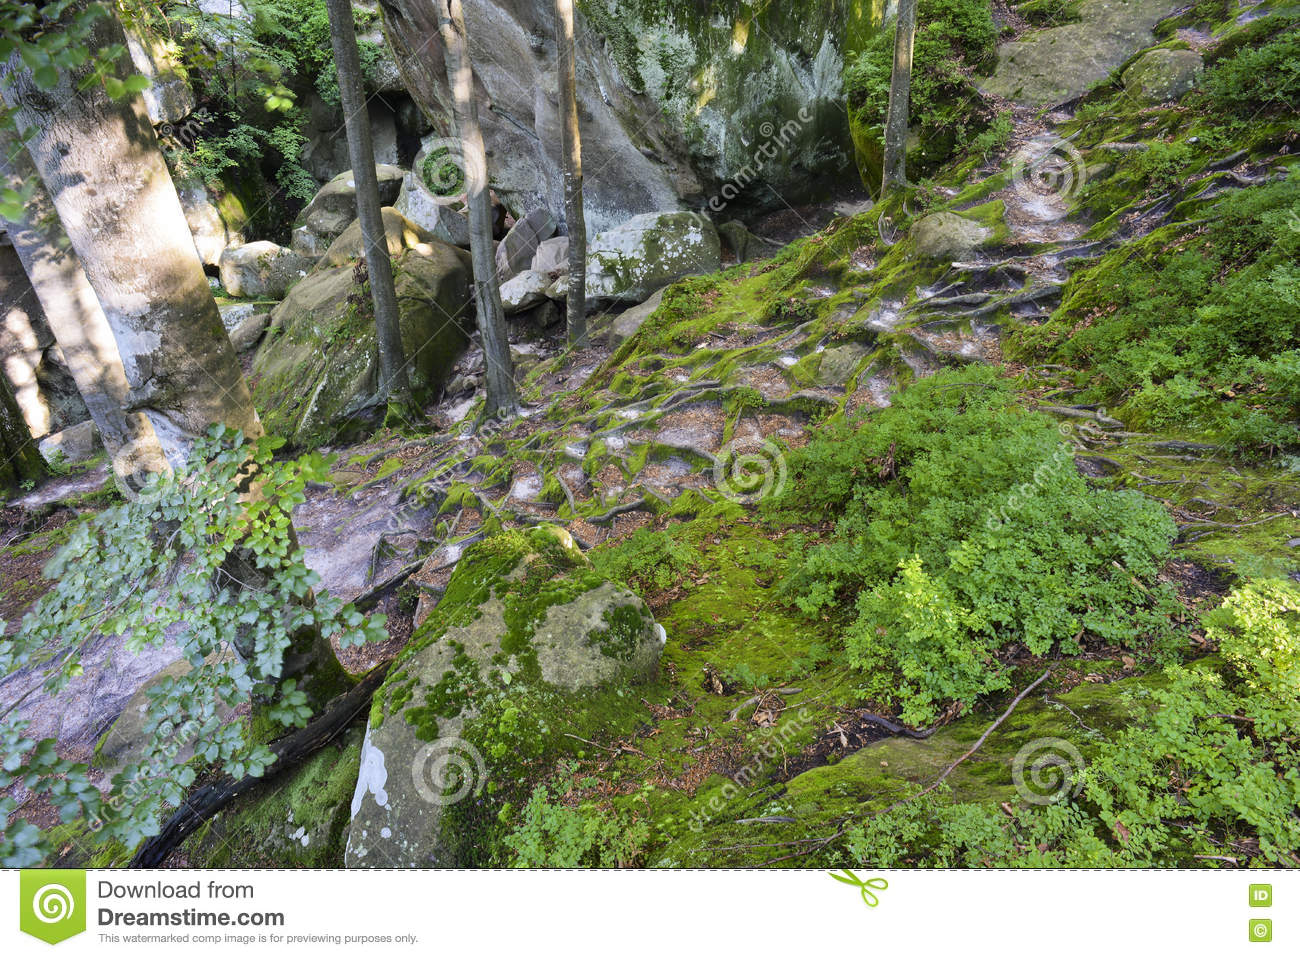 Dovbush Rocks, huge stones, rocks, moss, roots in the moss, trees among the rocks,moss, object, nature, tree, forest, rock